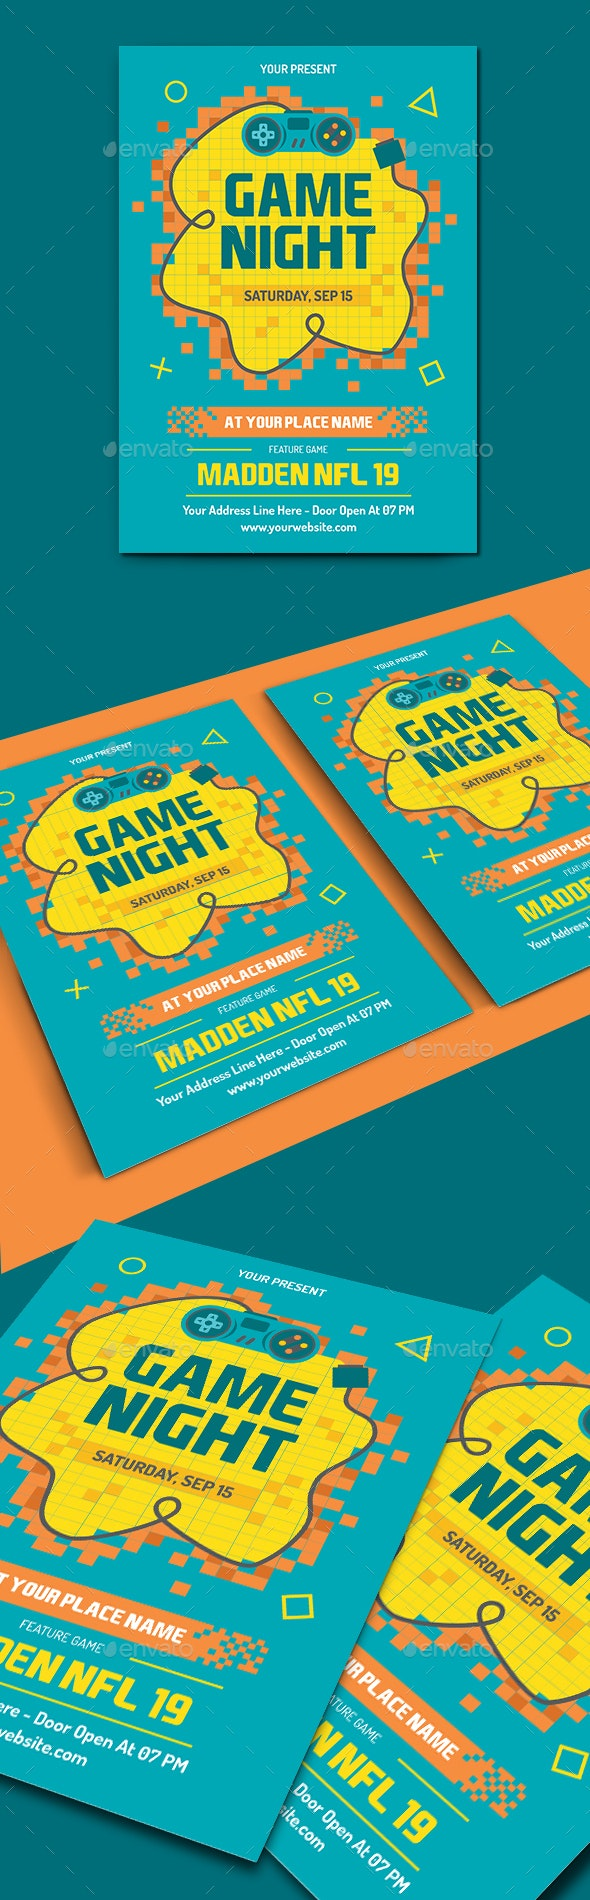 Video Game Night Flyer Template - Events Flyers